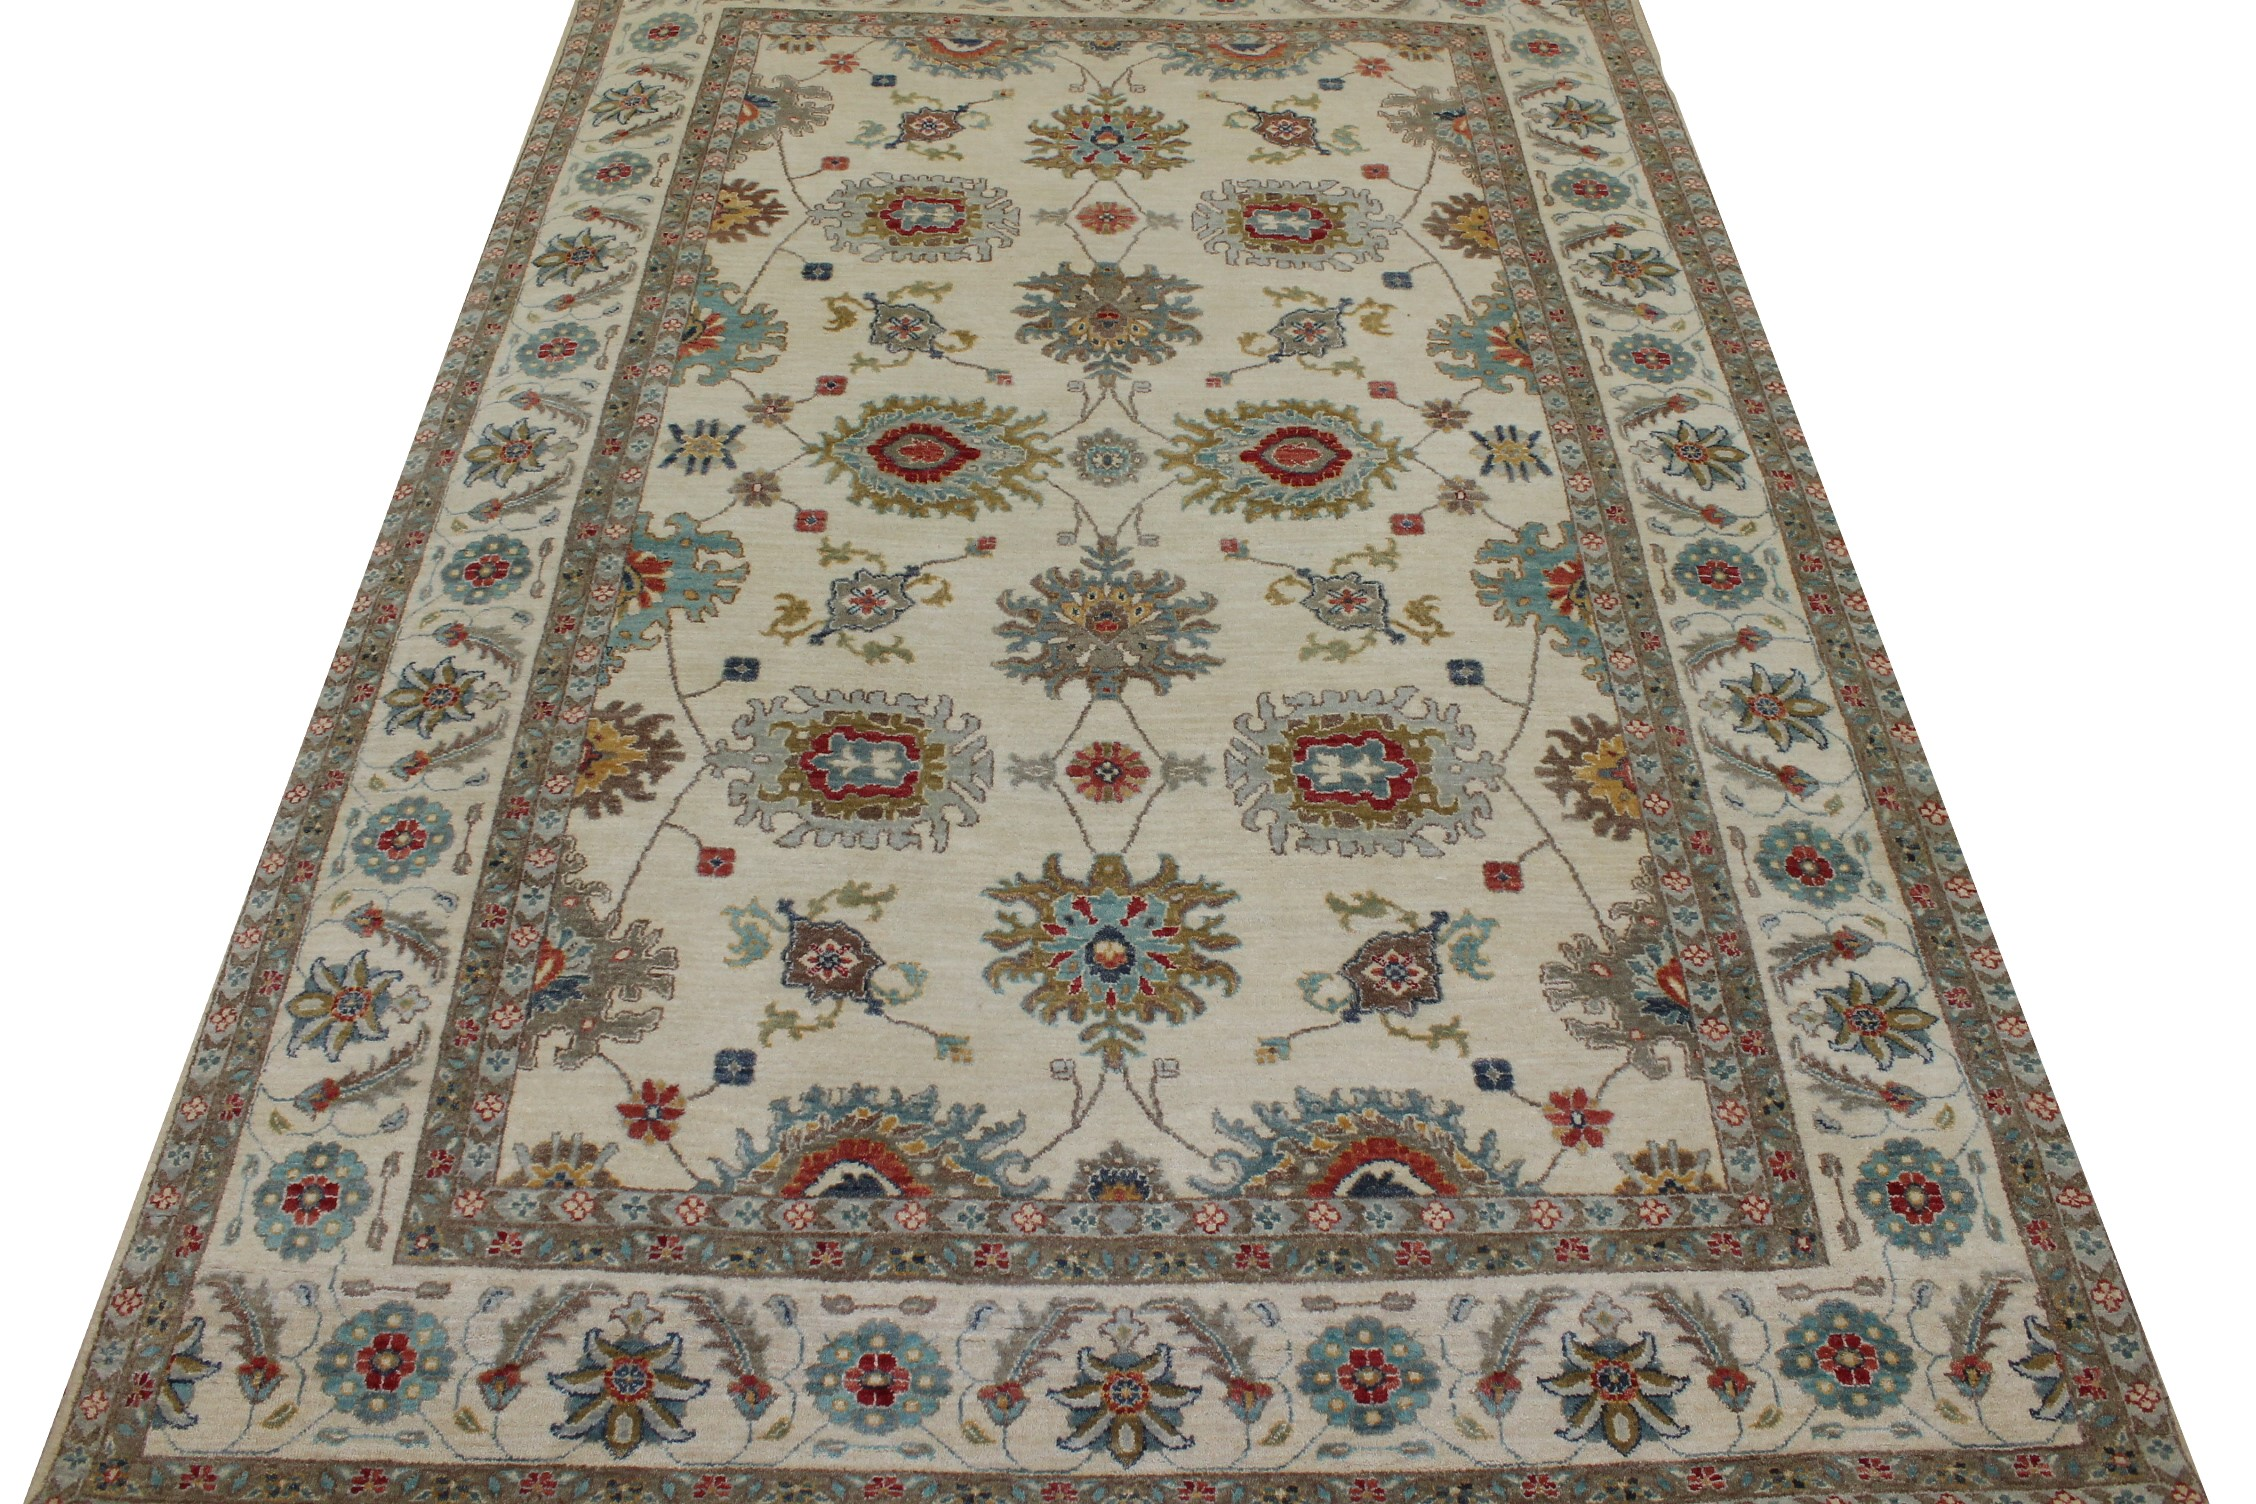 6x9 Traditional Hand Knotted Wool Area Rug - MR023664